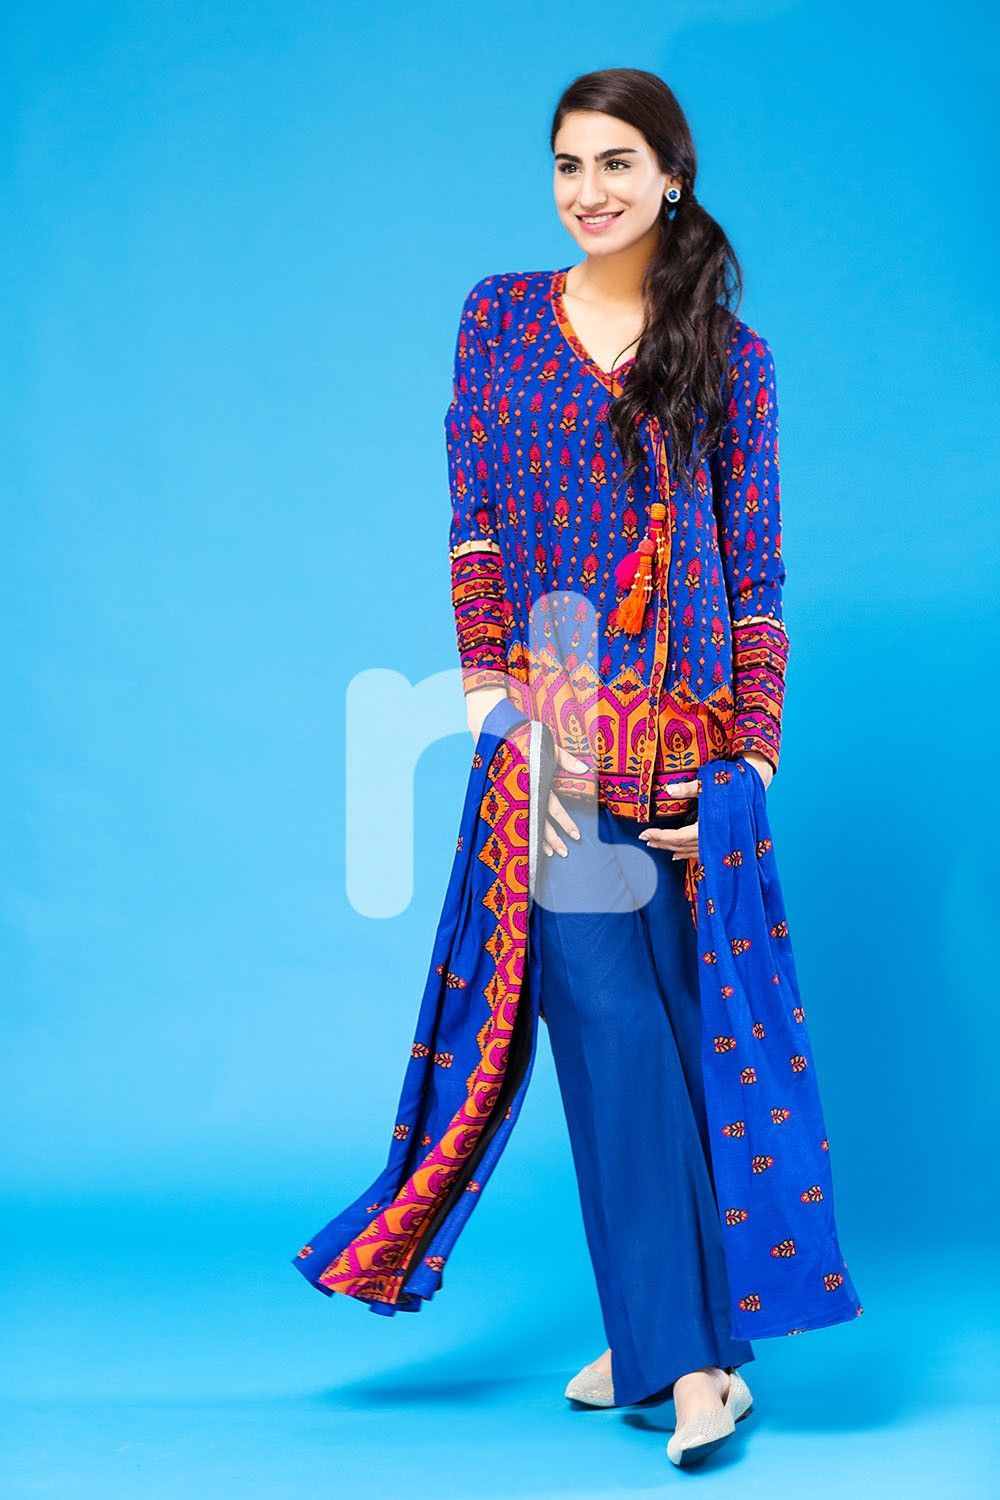 079ec25602 Nishat linen online shopping | Clothing in 2019 | Winter collection ...